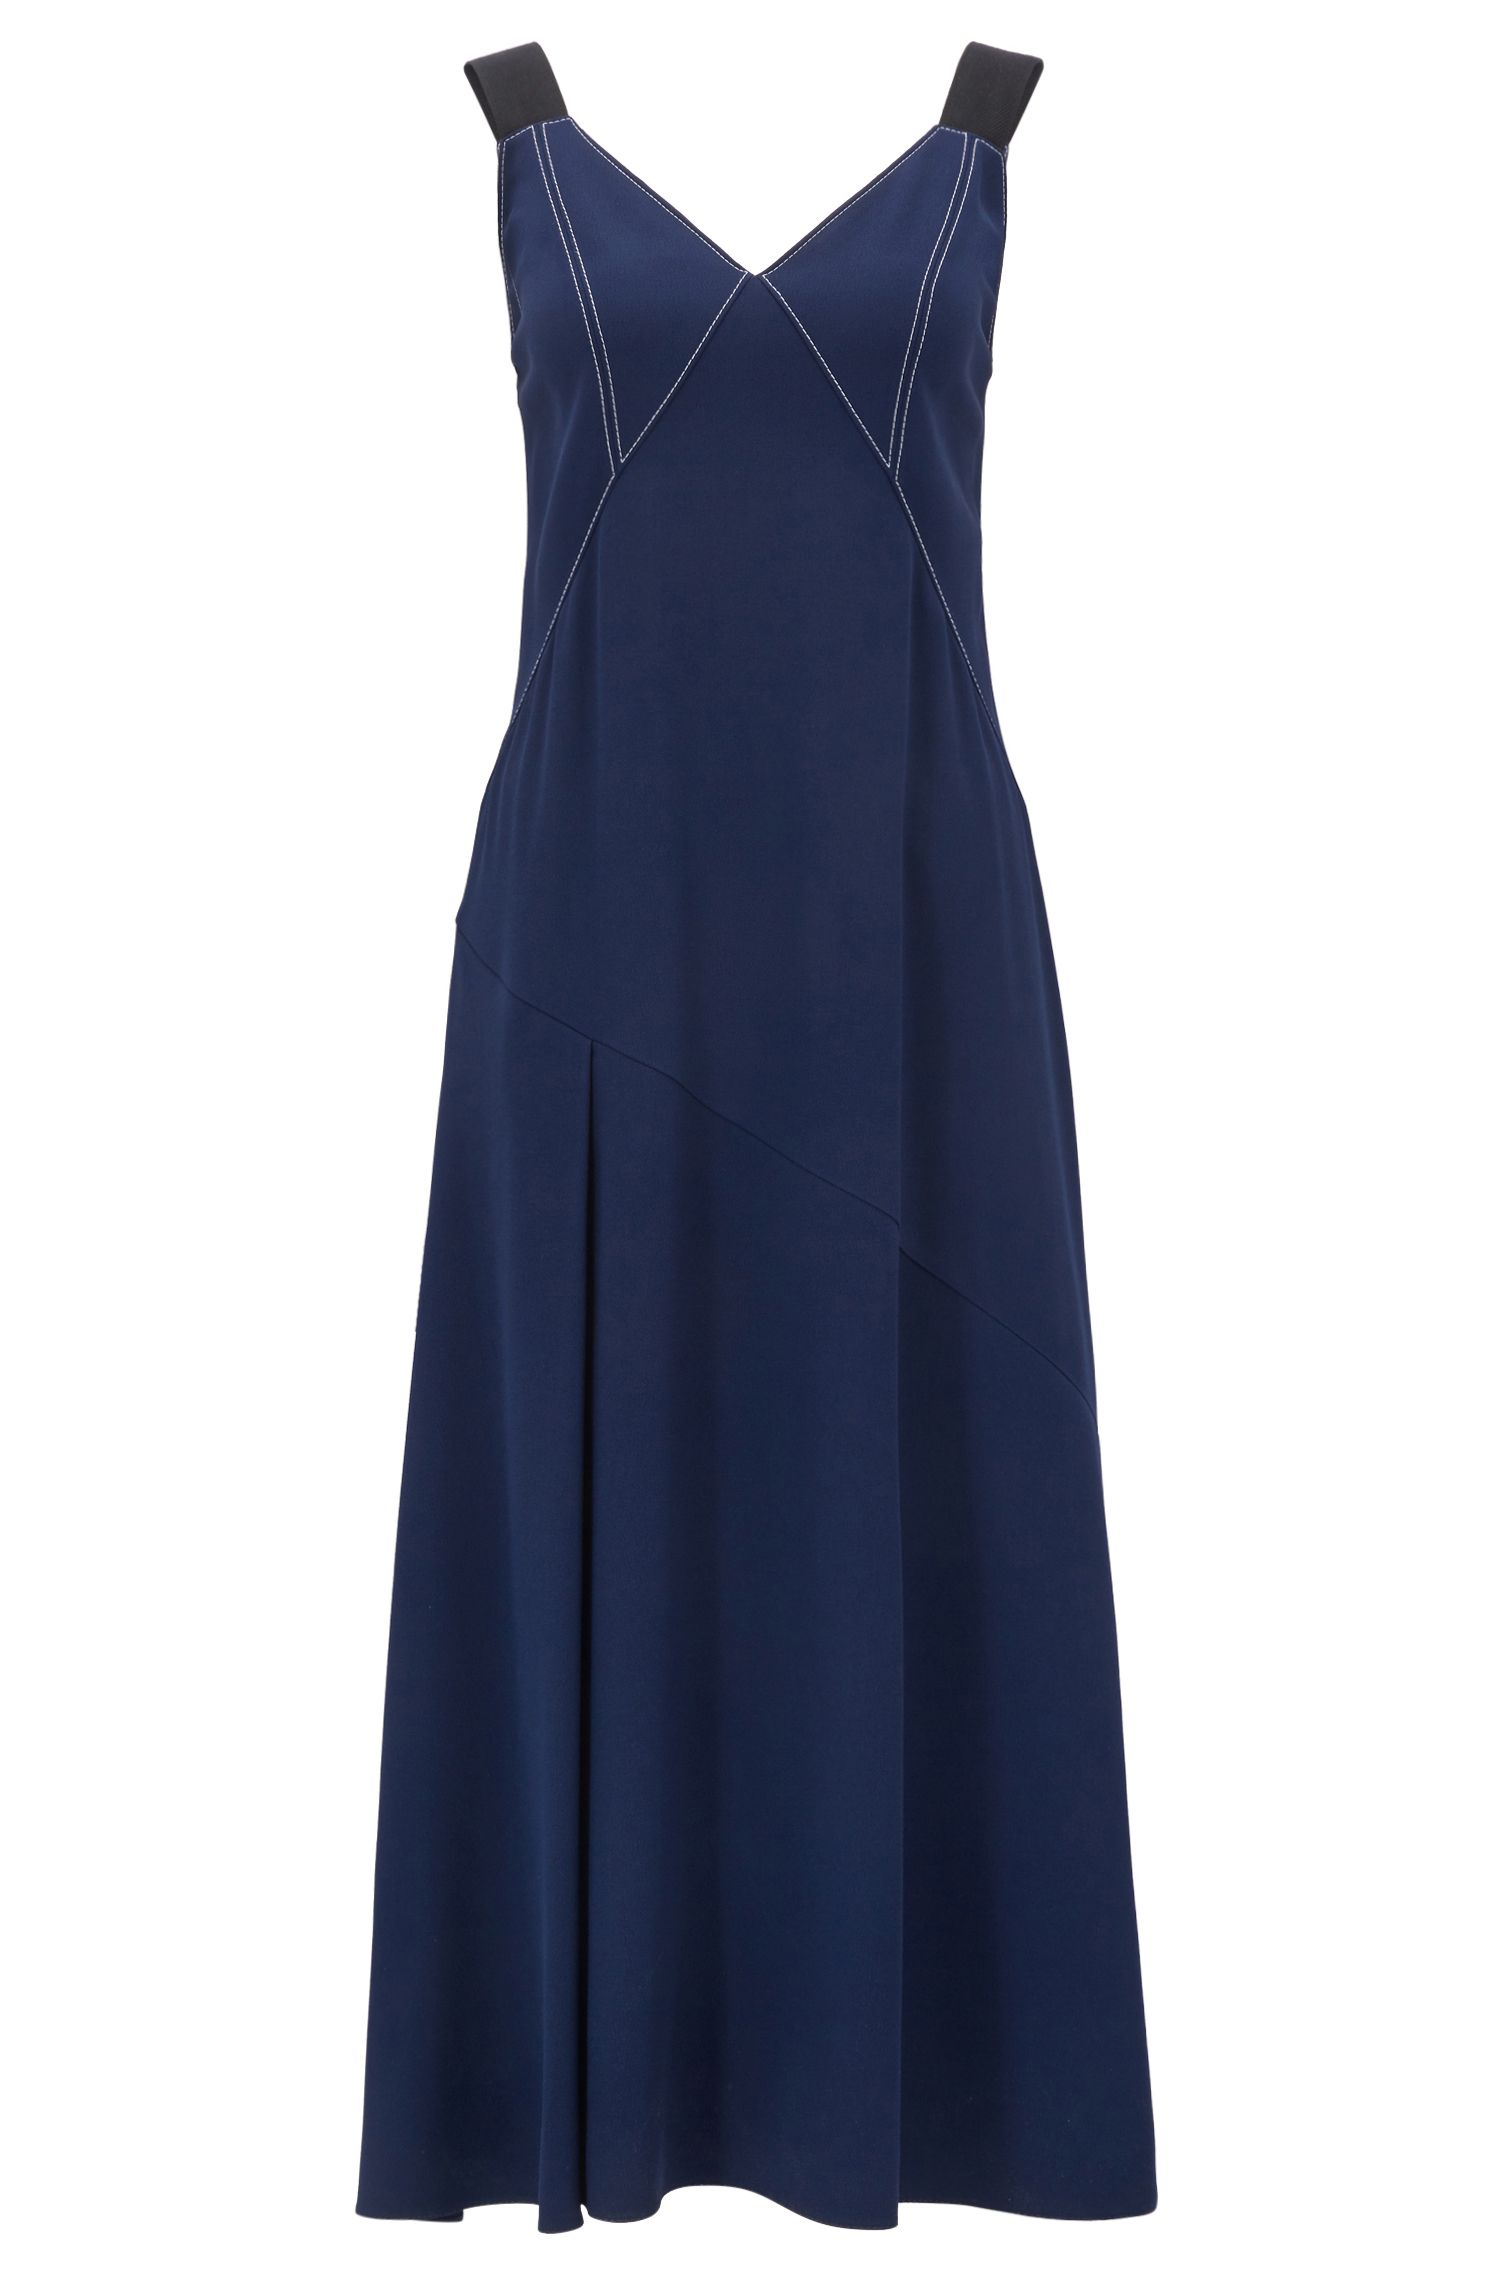 V-neck crêpe dress with contrast topstitching